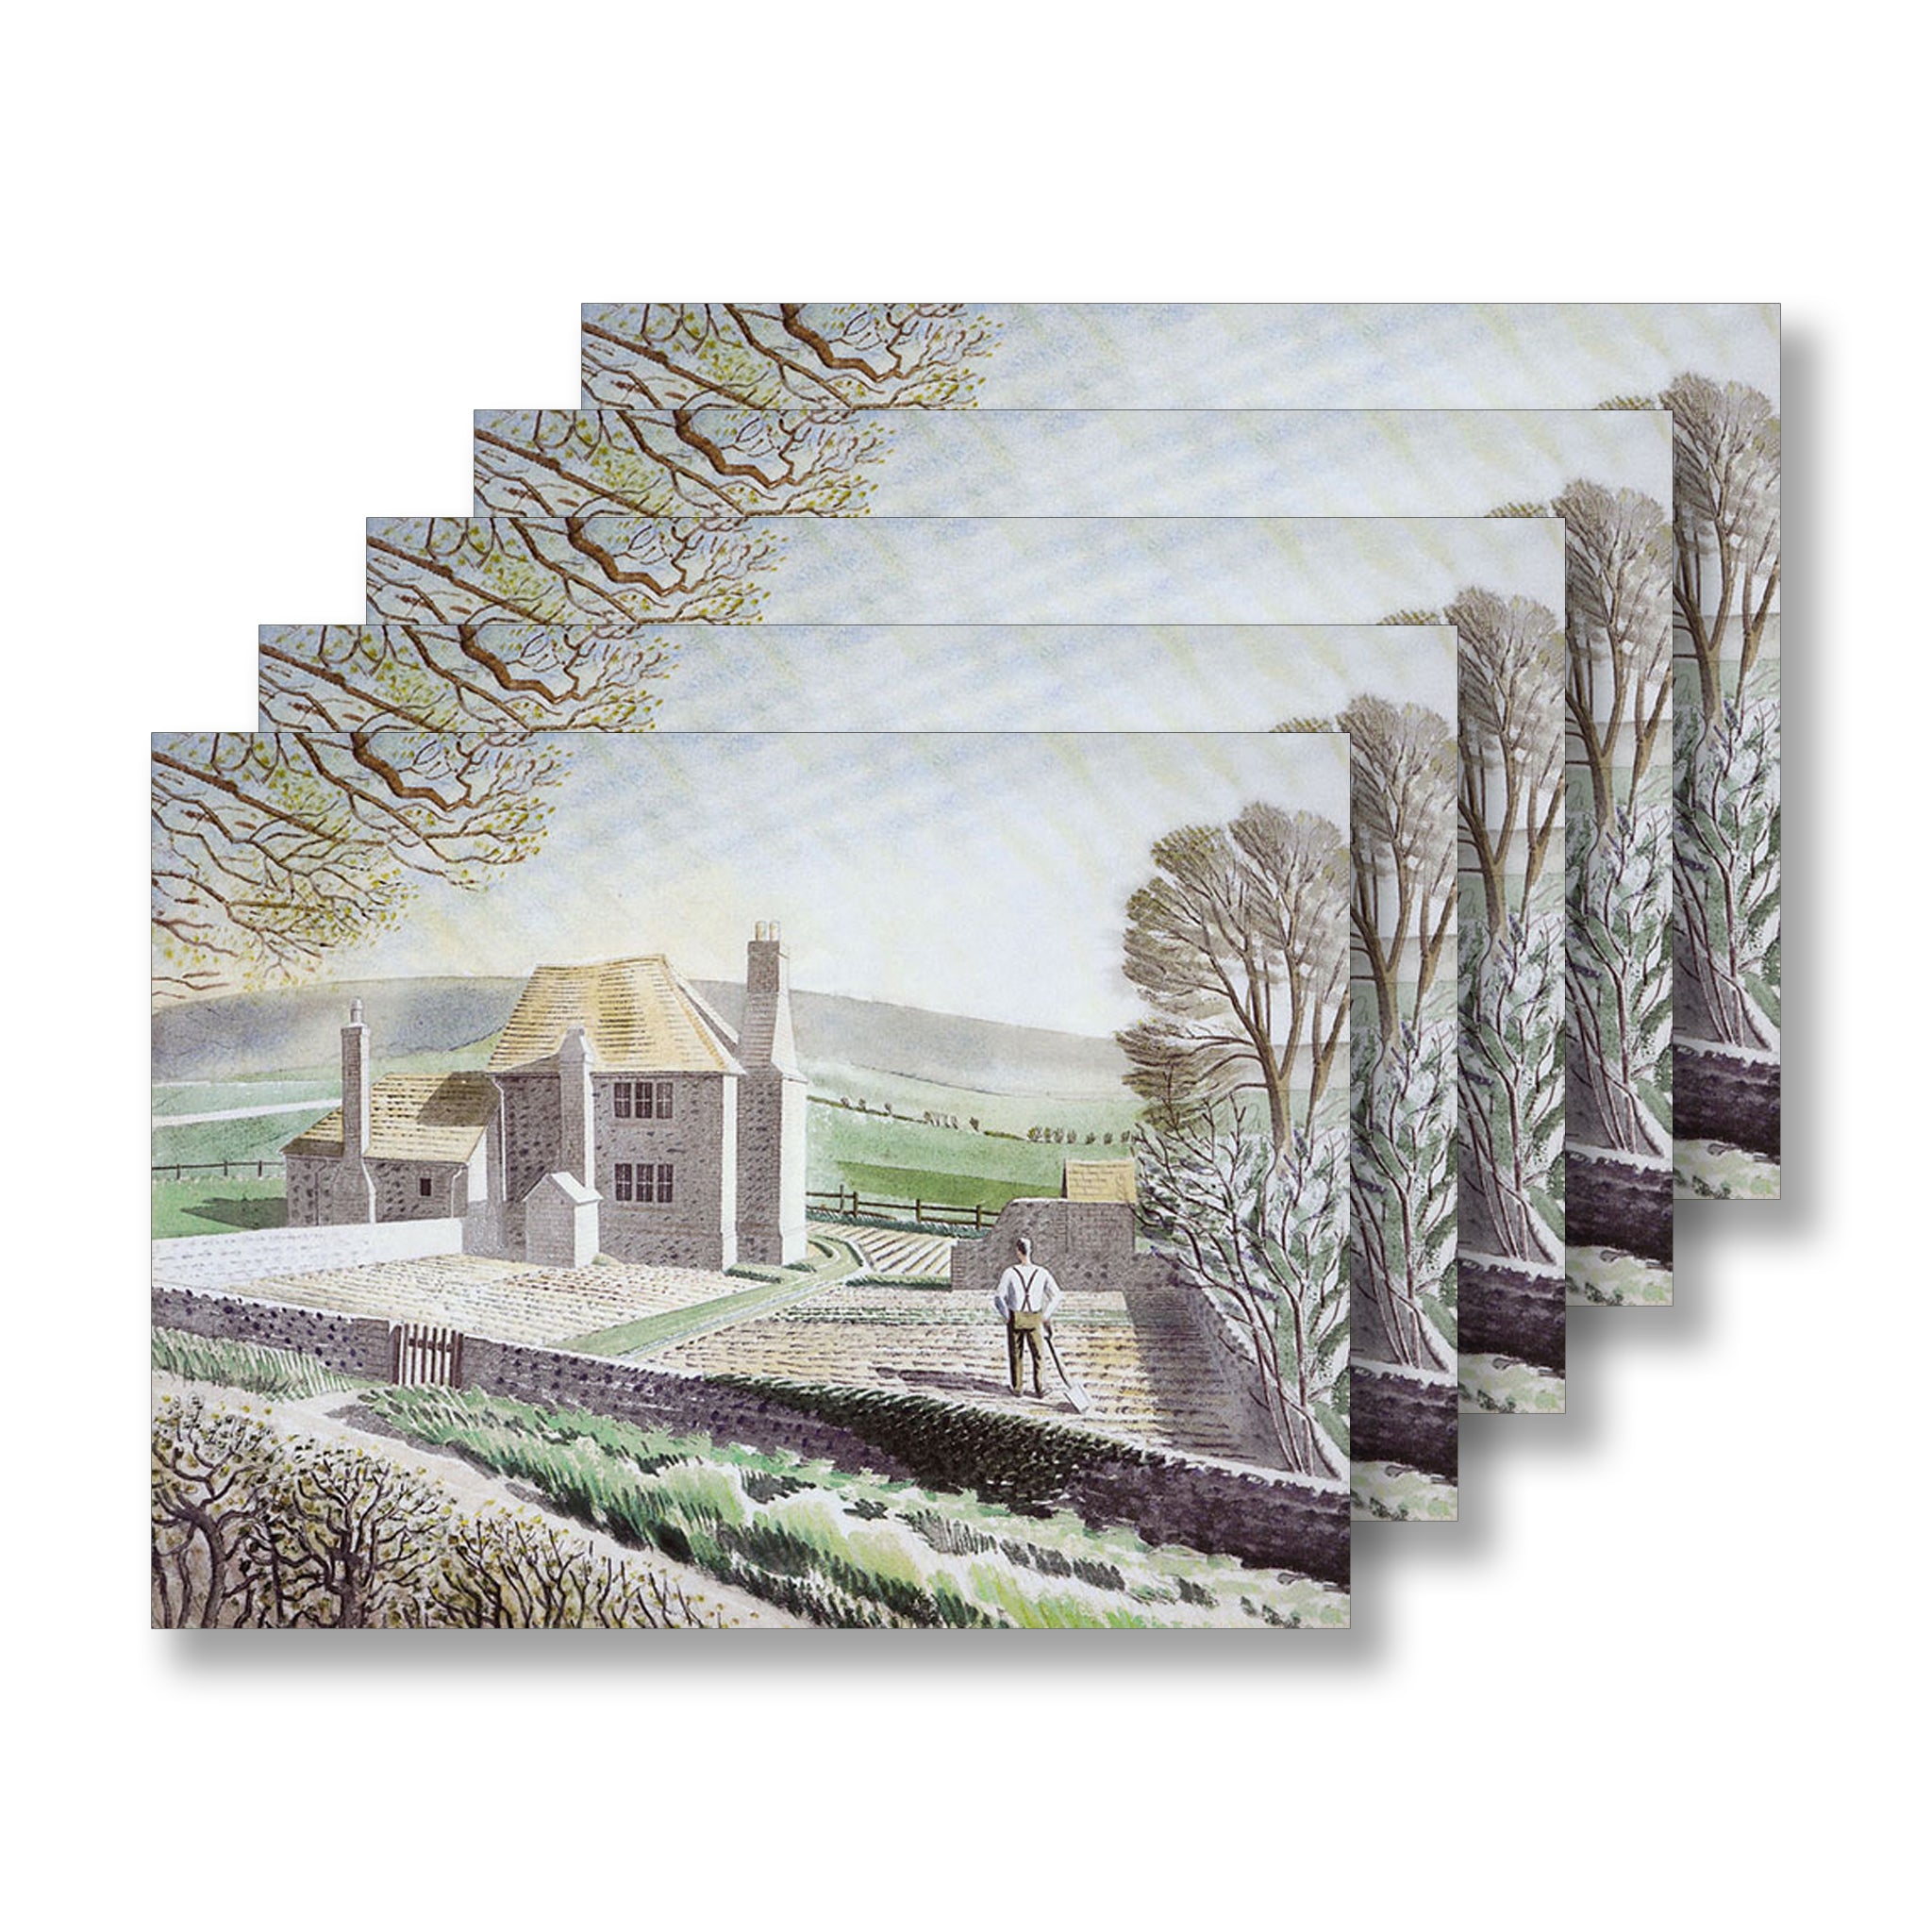 Shepherd's Cottage, Firle by Eric Ravilious